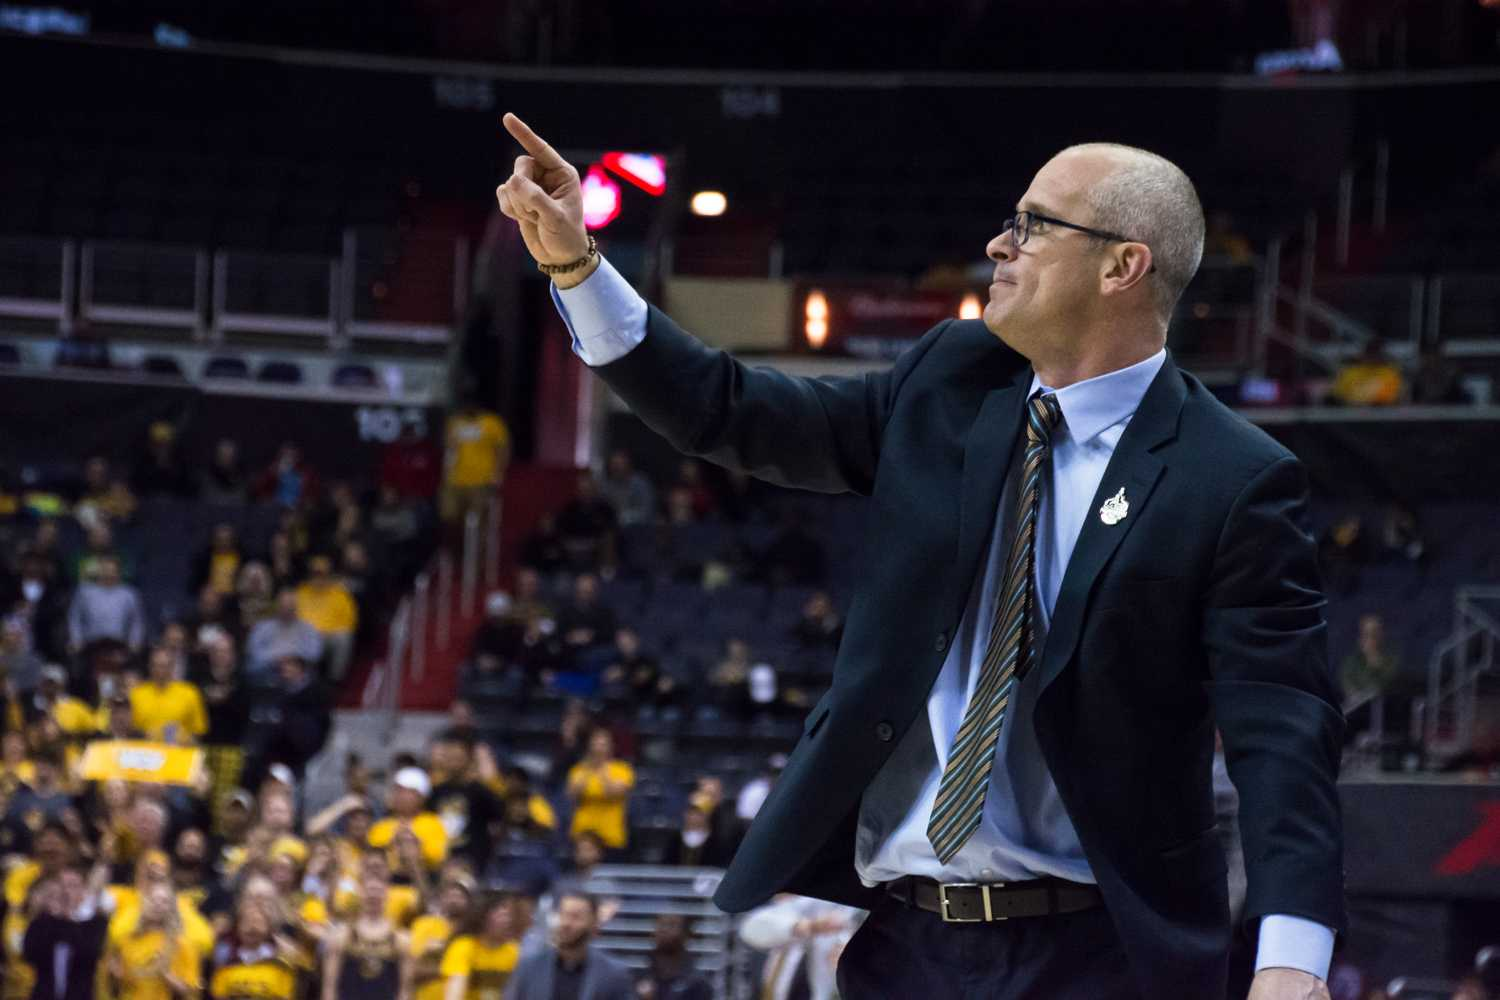 The University of Rhode Island men's basketball coach Dan Hurley at the Atlantic 10 conference. (Photo courtesy of Autumn Walker/The Good 5 Cent Cigar)